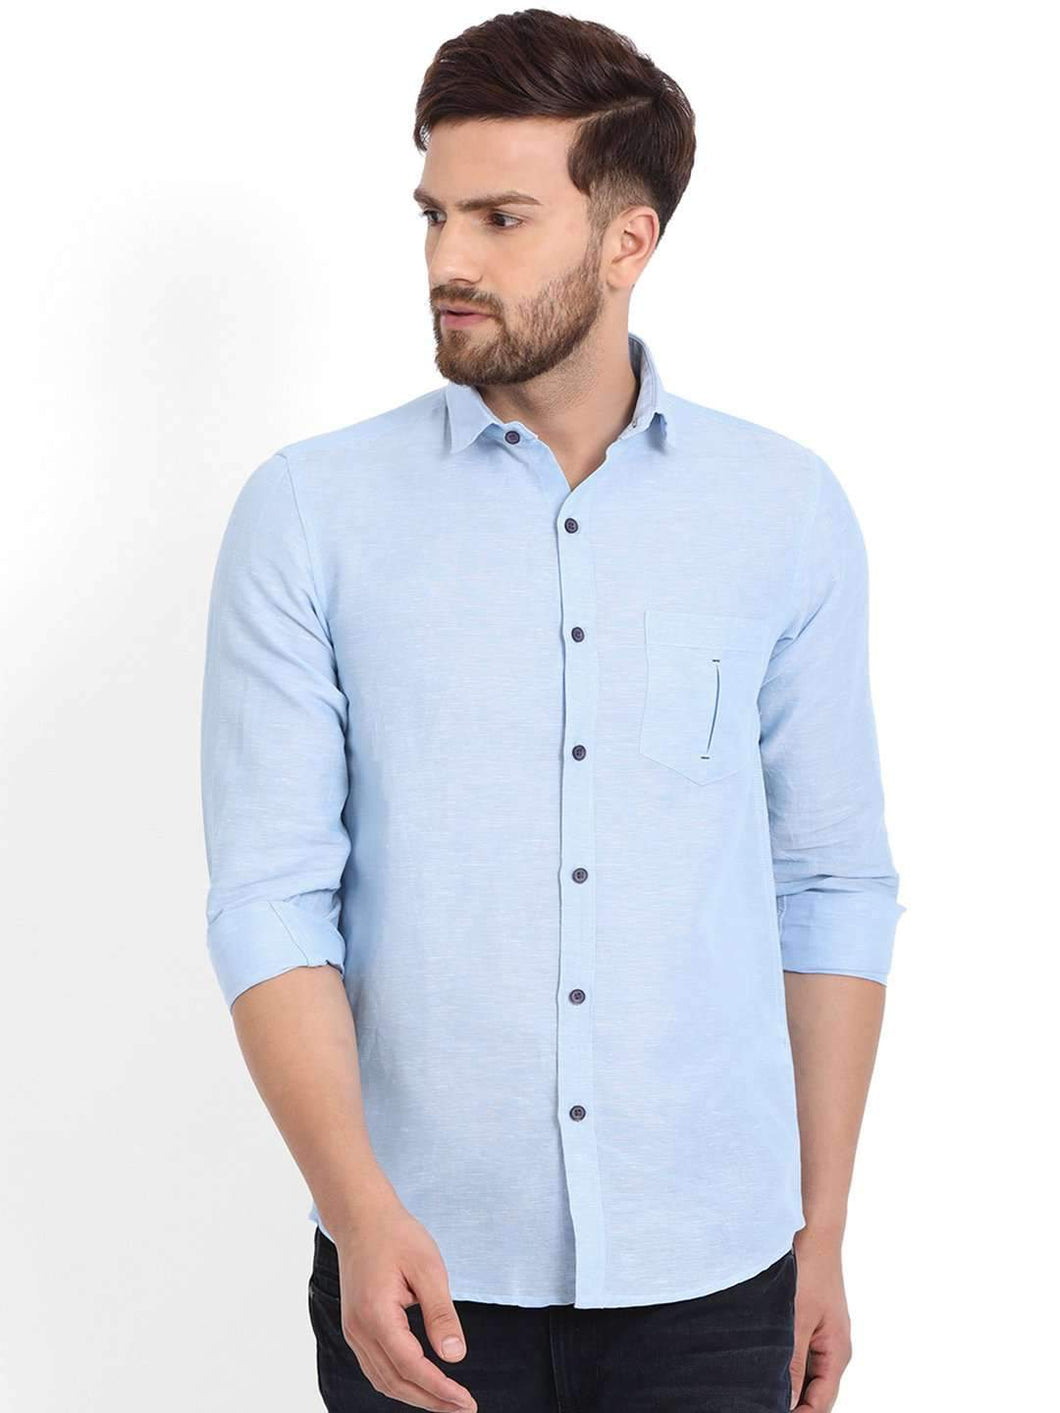 Richlook Blue Solid Casual Shirt